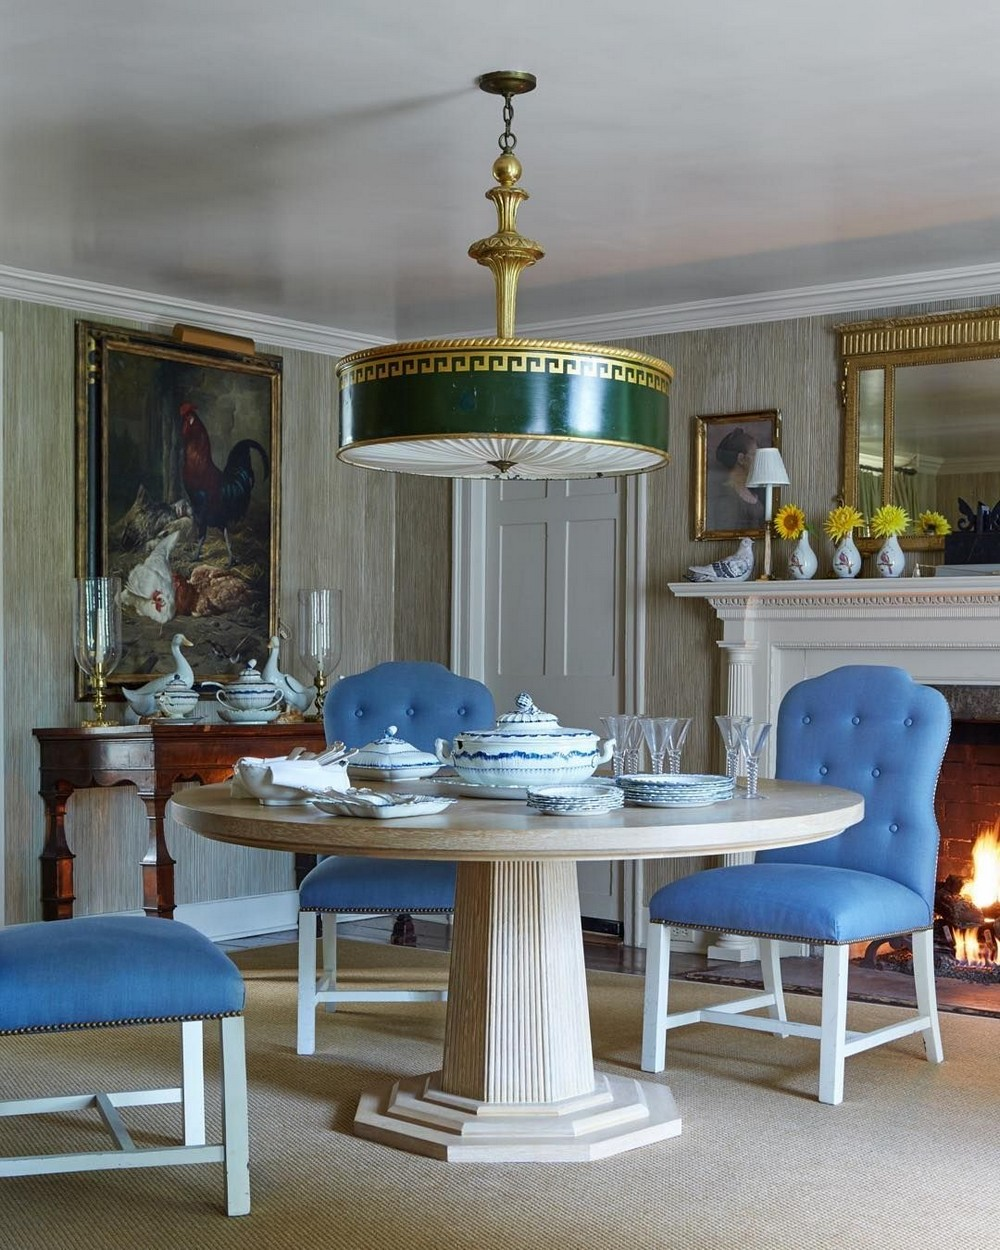 A Legacy of Superior Design: Dining Rooms by Bunny Williams bunny williams A Legacy of Superior Design: Dining Rooms by Bunny Williams 1 Pinterest